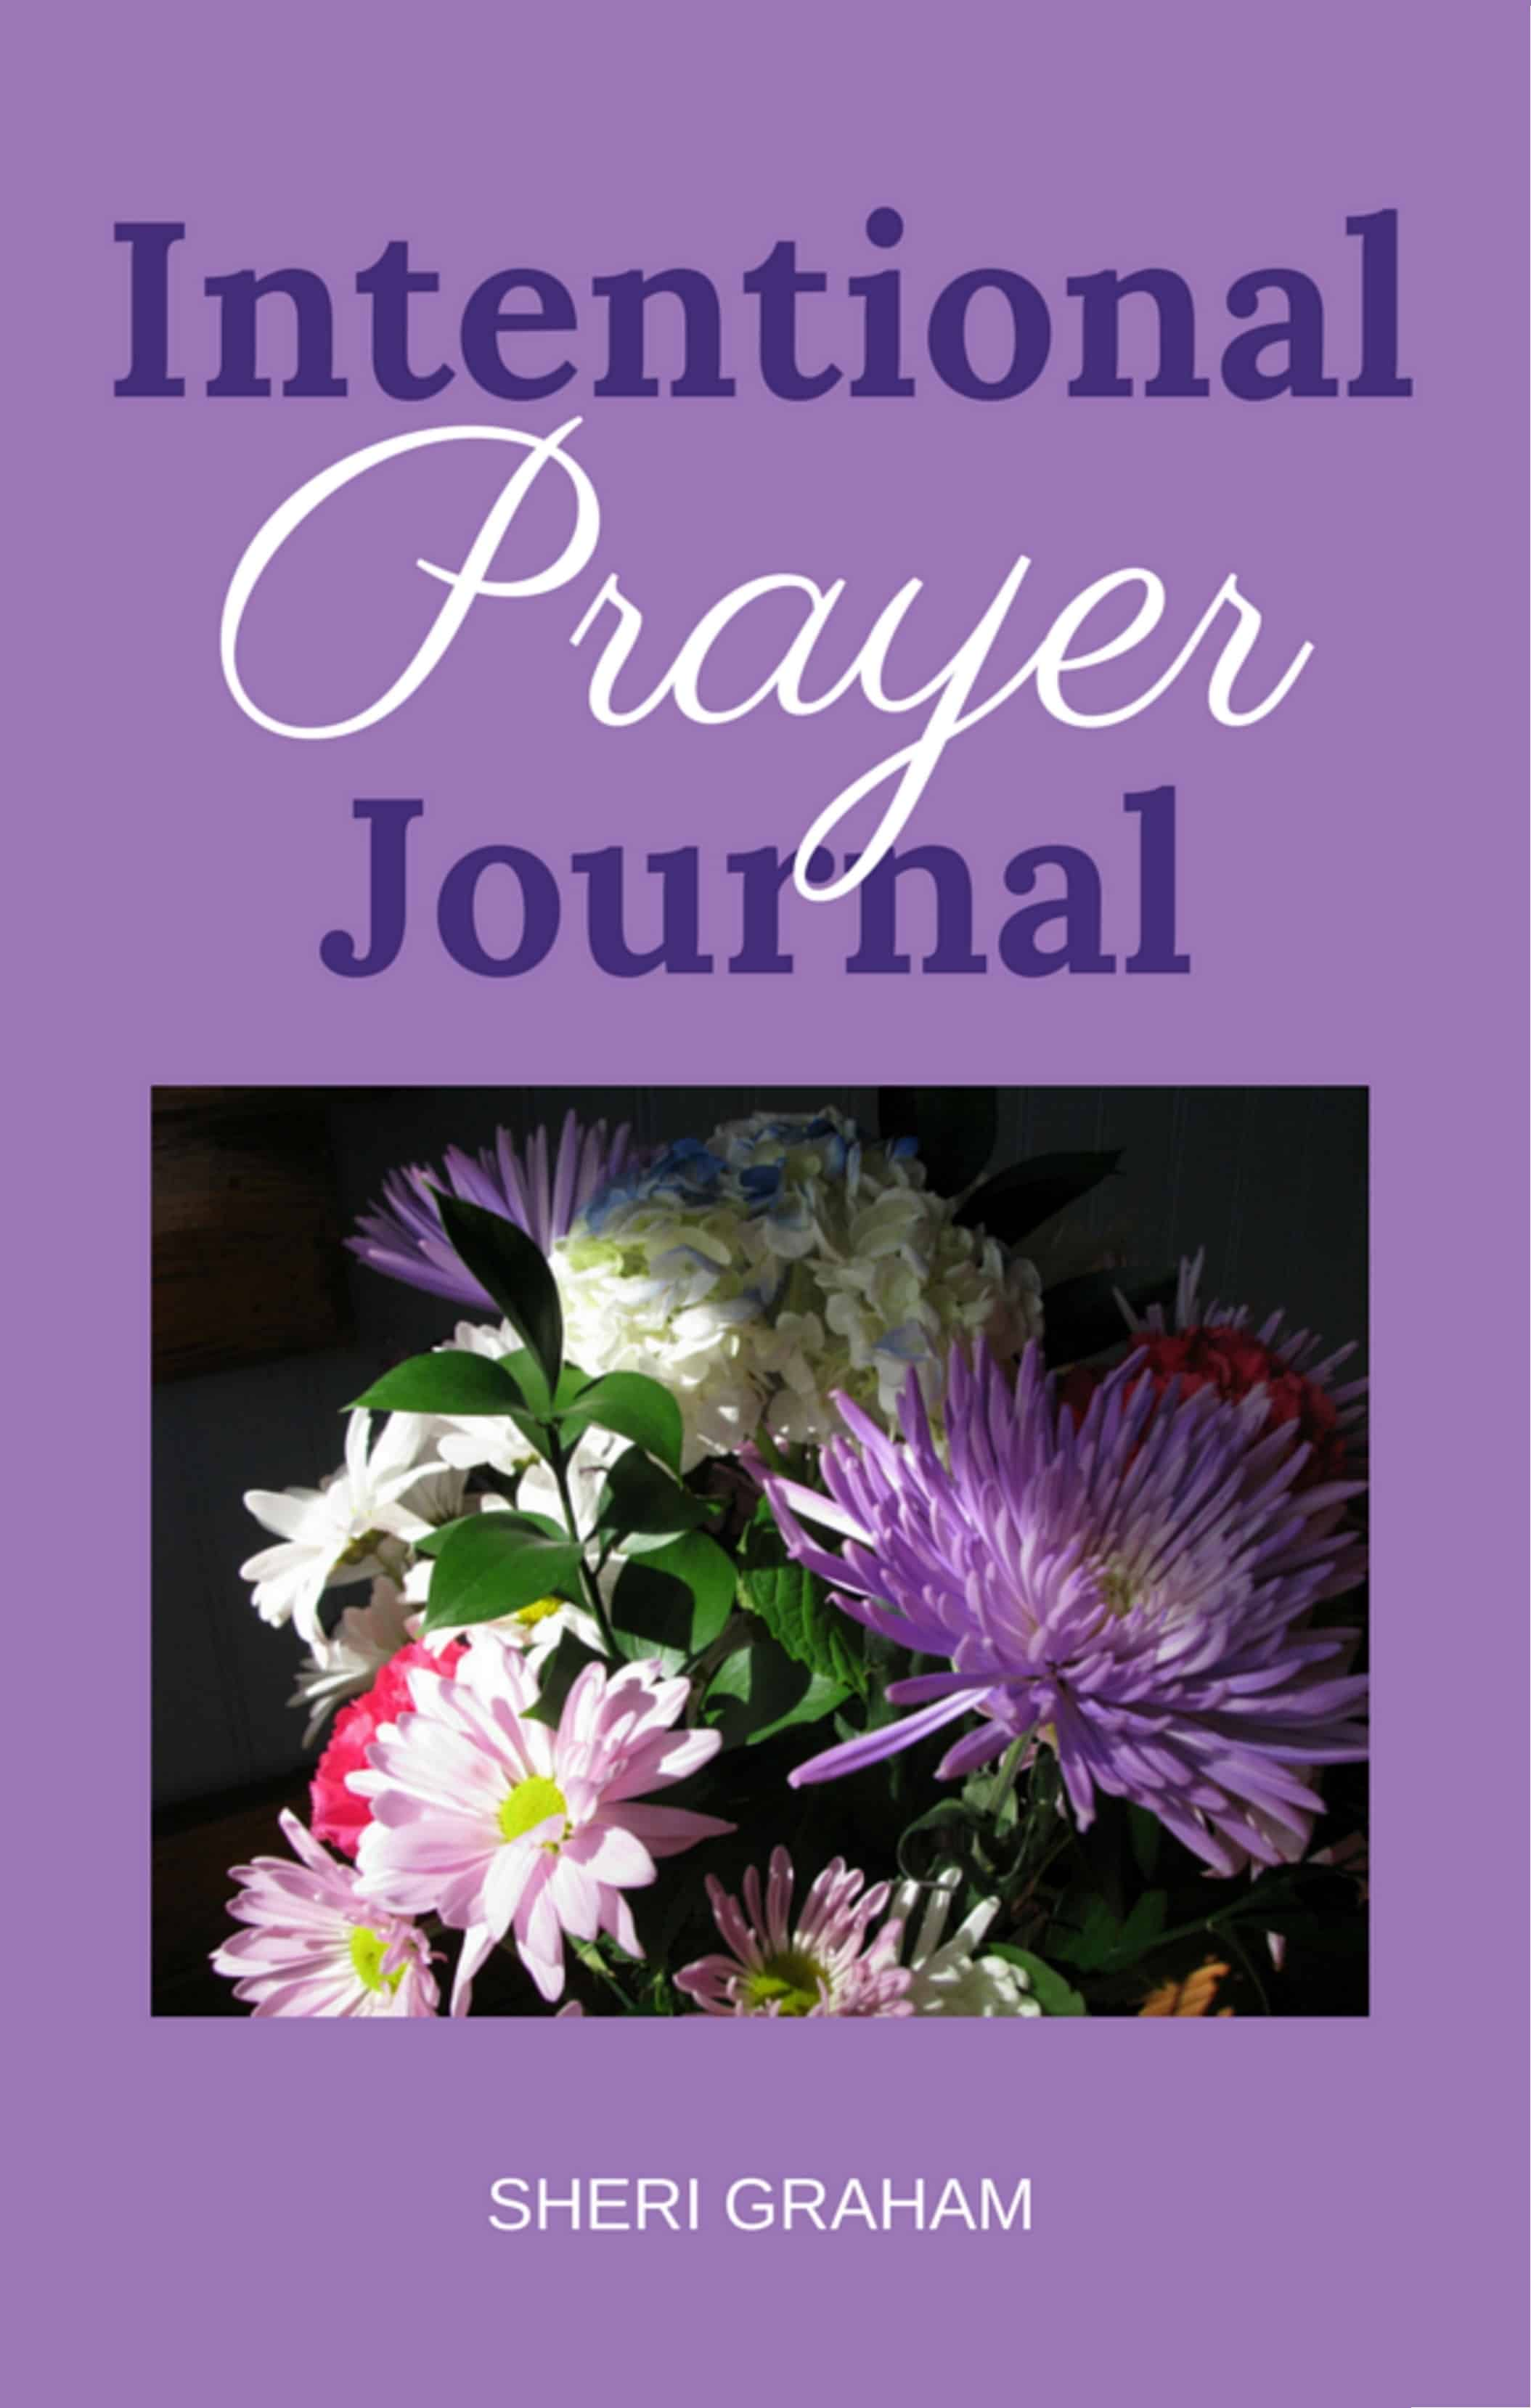 New Book: Intentional Prayer Journal